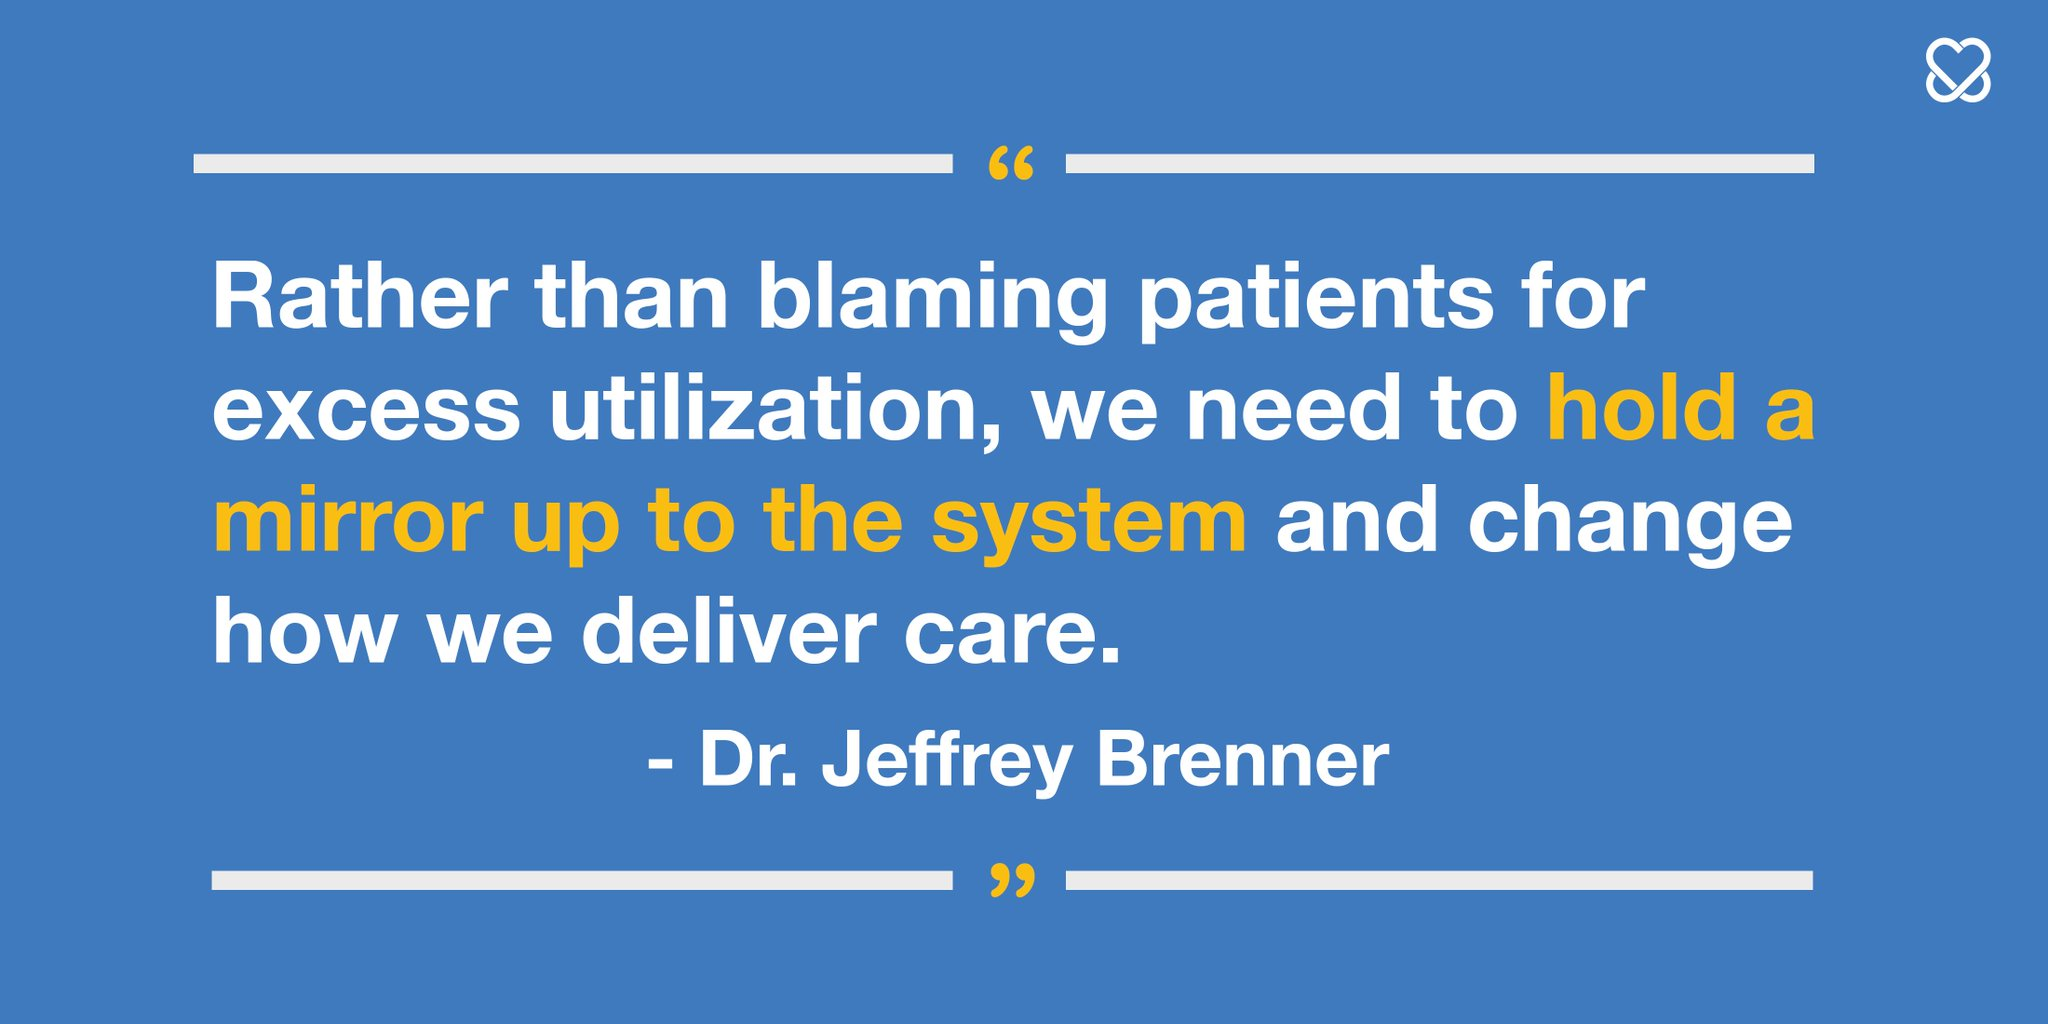 Dr. Jeff Brenner on #CenteringCare for patients with complex health & social needs, via @AJMC_Journal https://t.co/zbaGiMWvV8 https://t.co/kj3n0DiWpG